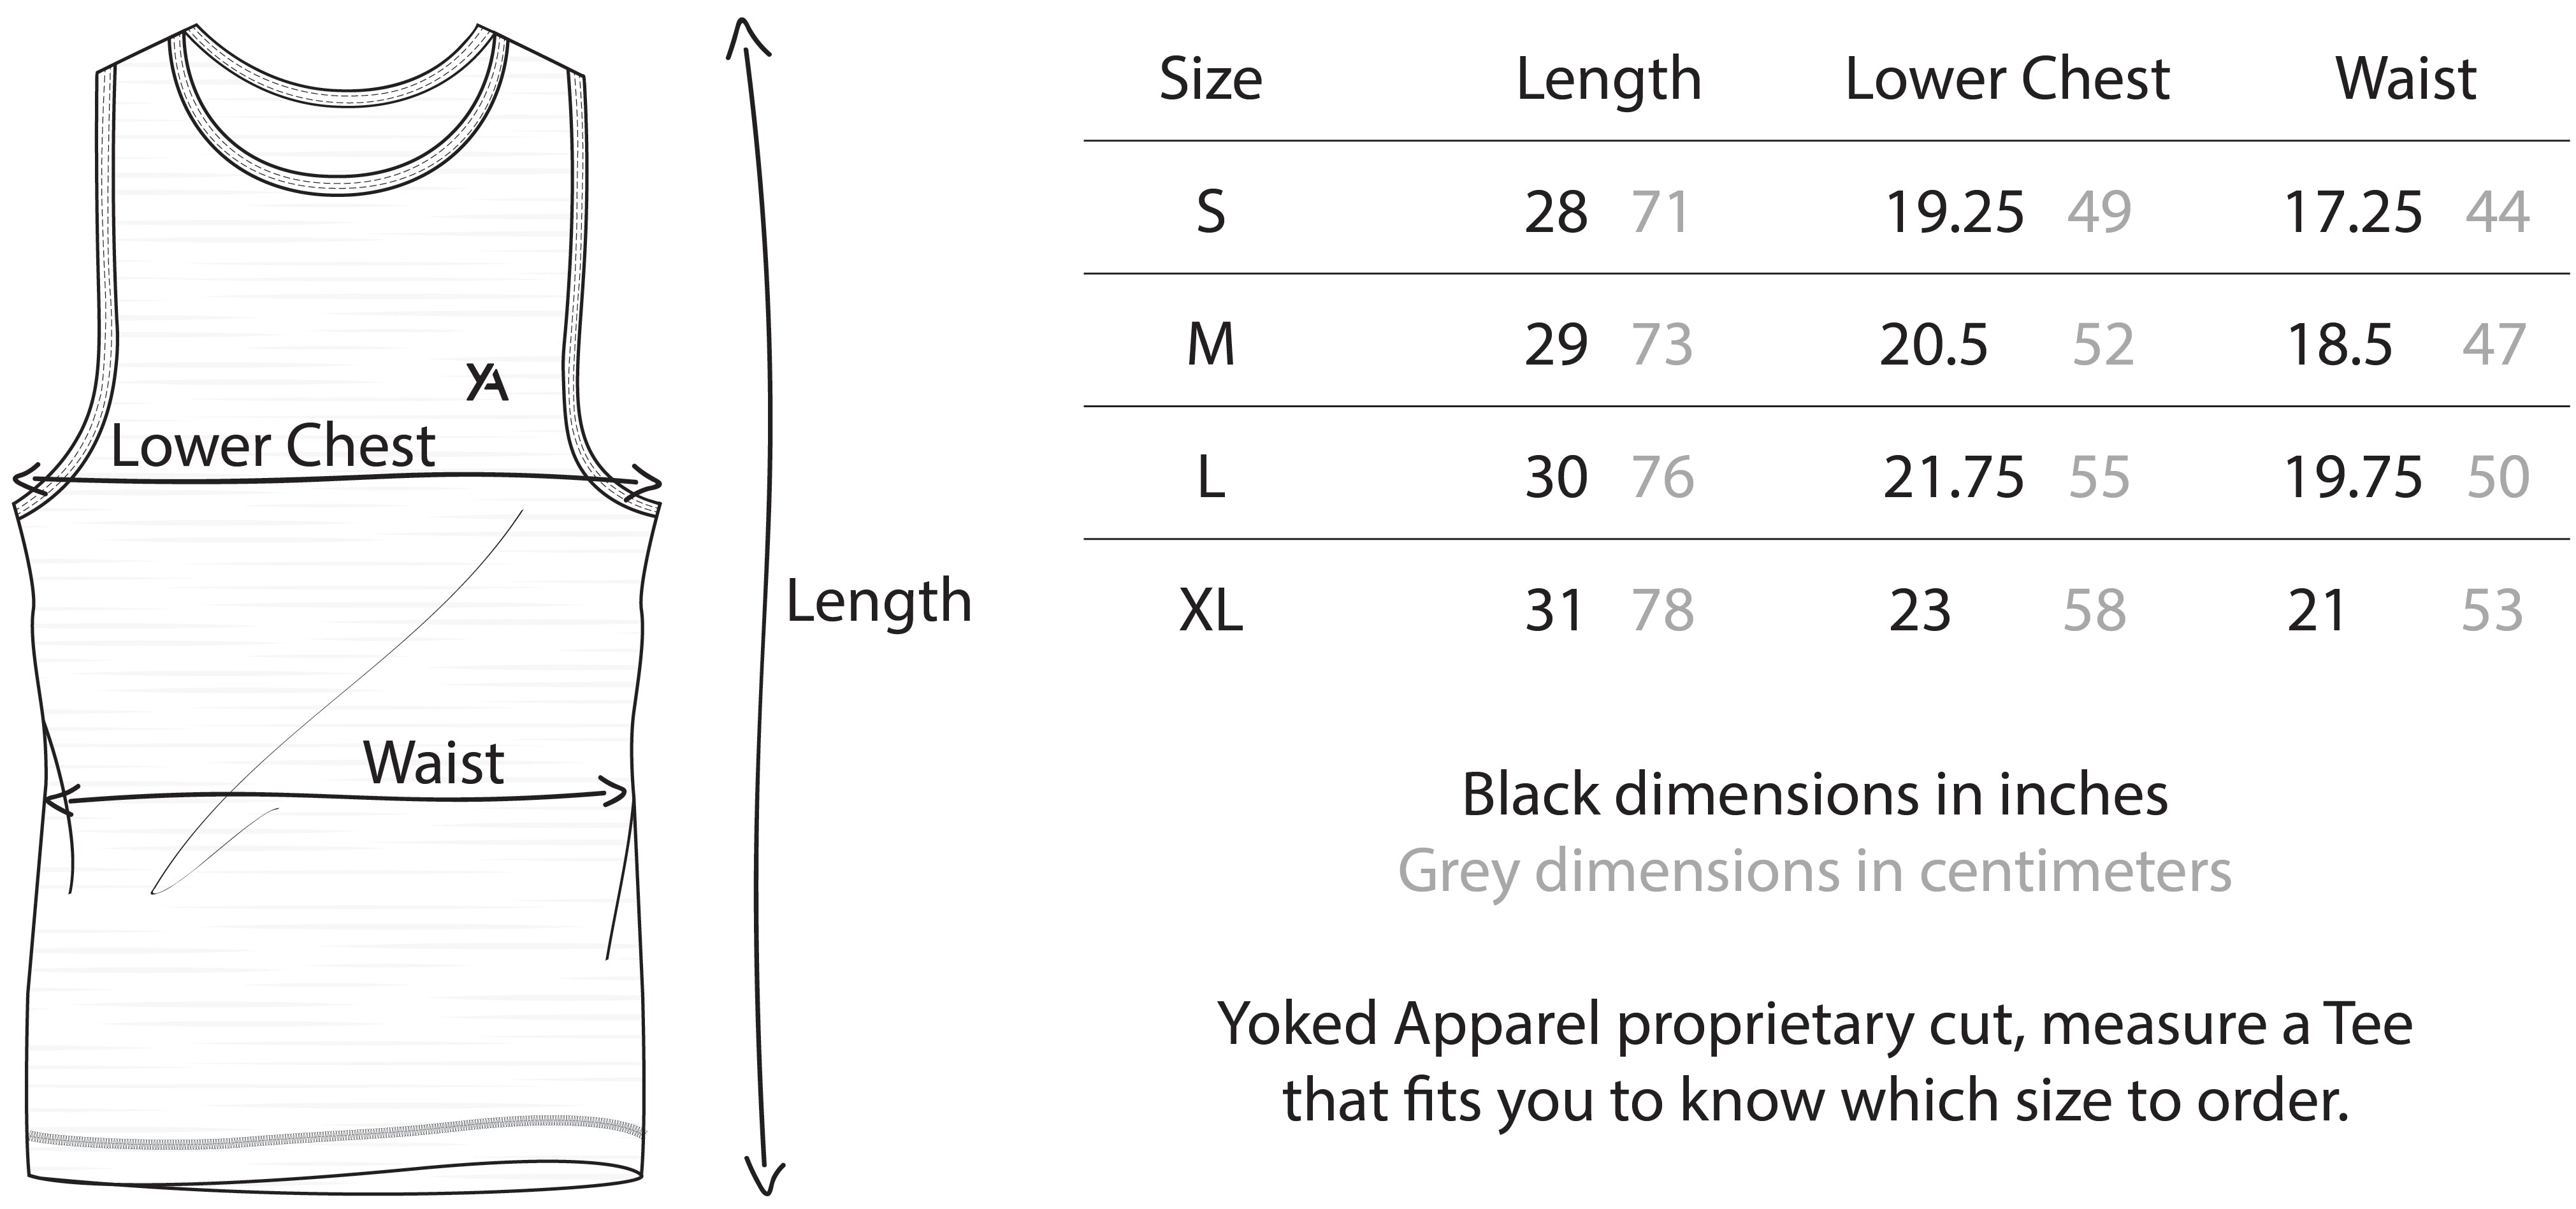 Yoked Apparel muscle fit tank top sizing chart